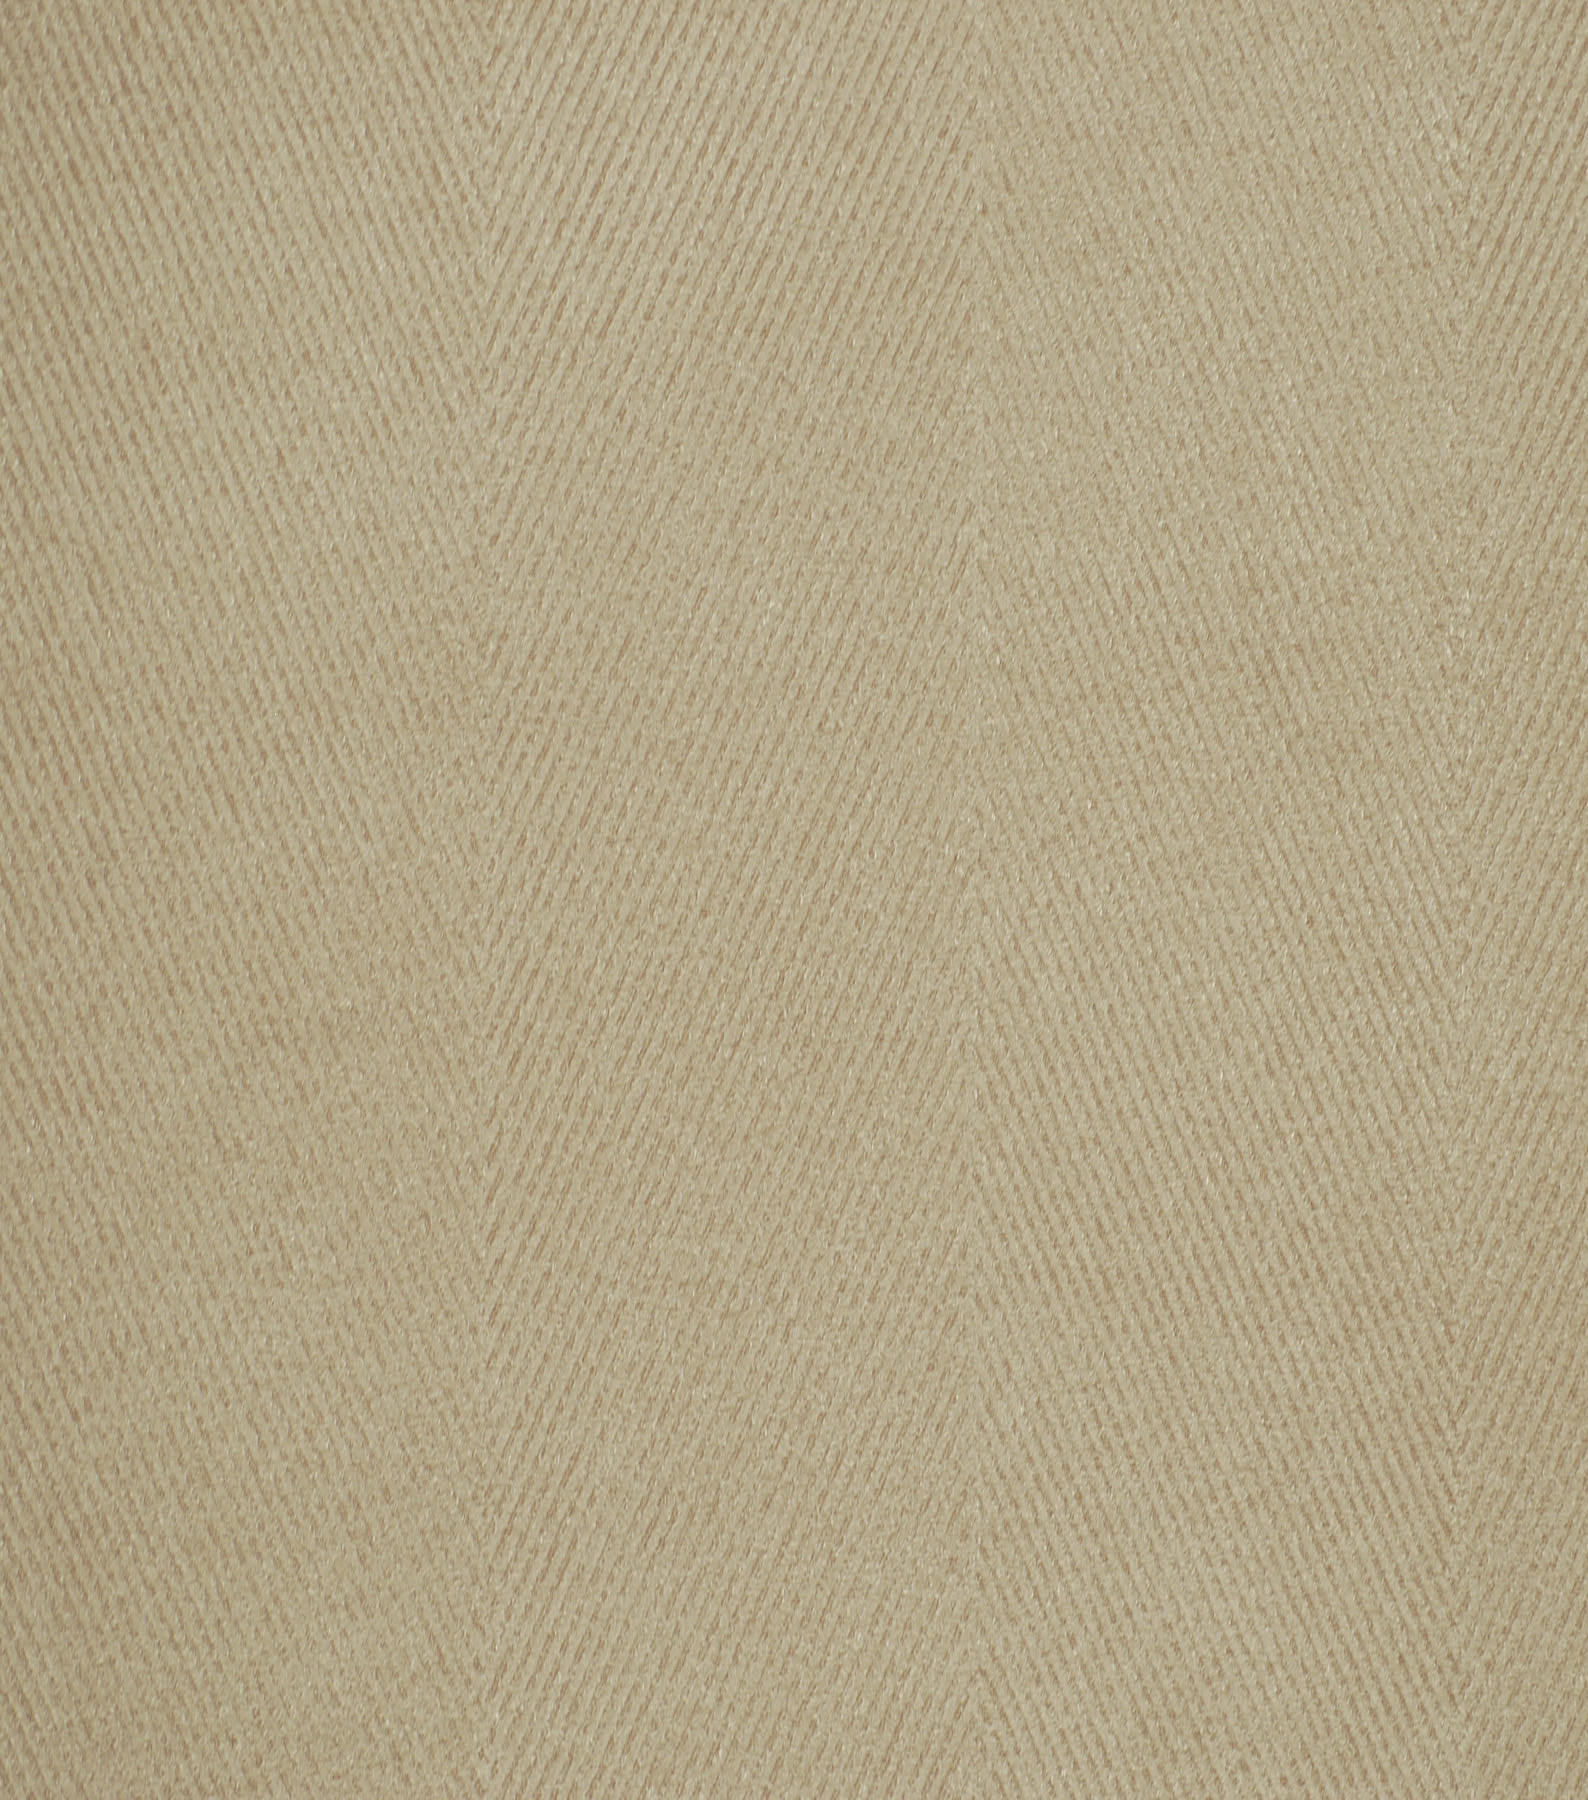 Home Decor 8\u0022x8\u0022 Fabric Swatch-Solid Fabric Signature Series Woodburn Buff